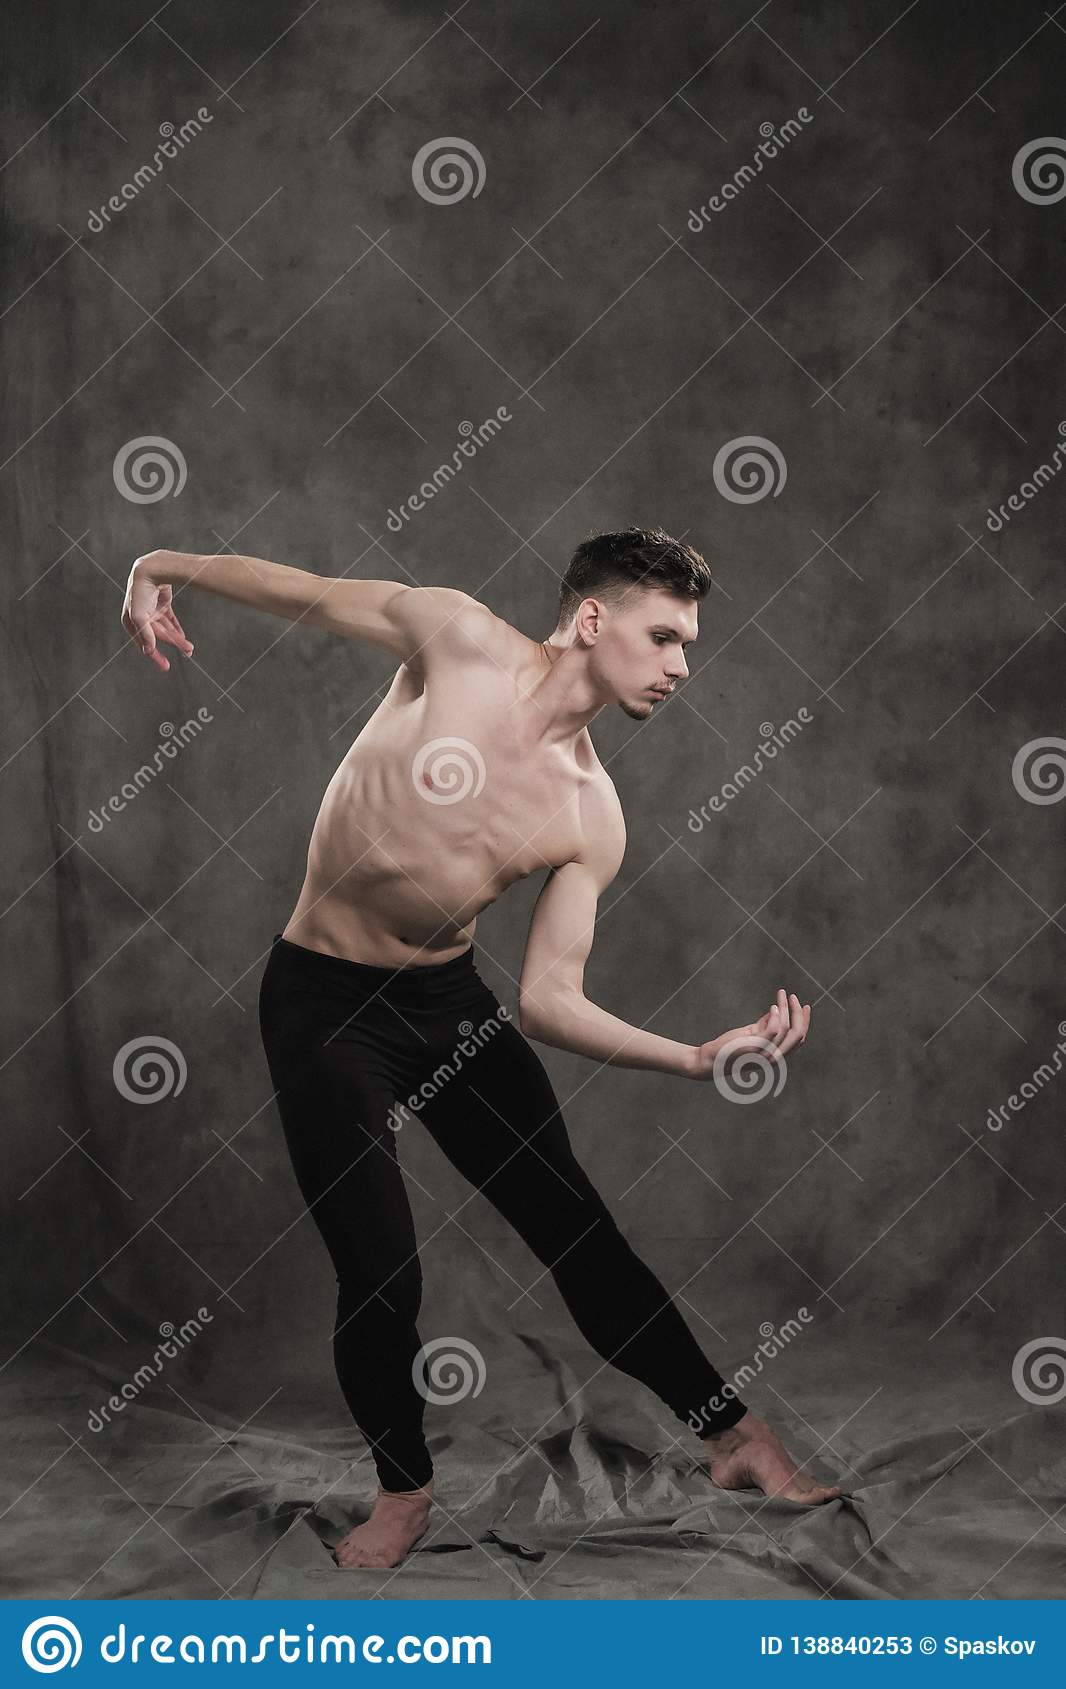 5ecf9e7b94da7 A young male ballet dancer with black leggings and a naked torso performs  dance moves against